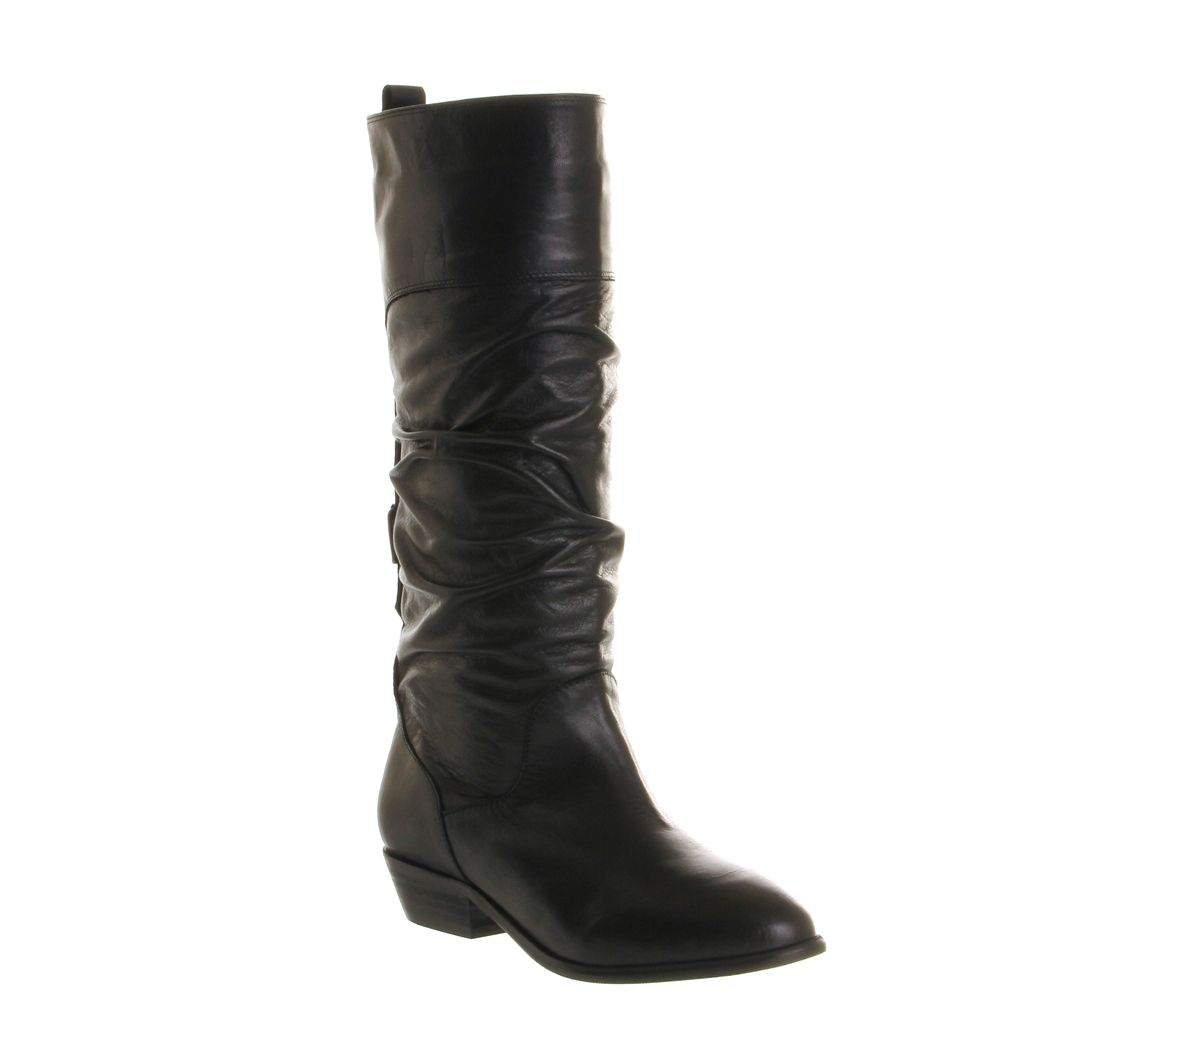 Office Ace slouch boots Black Leather